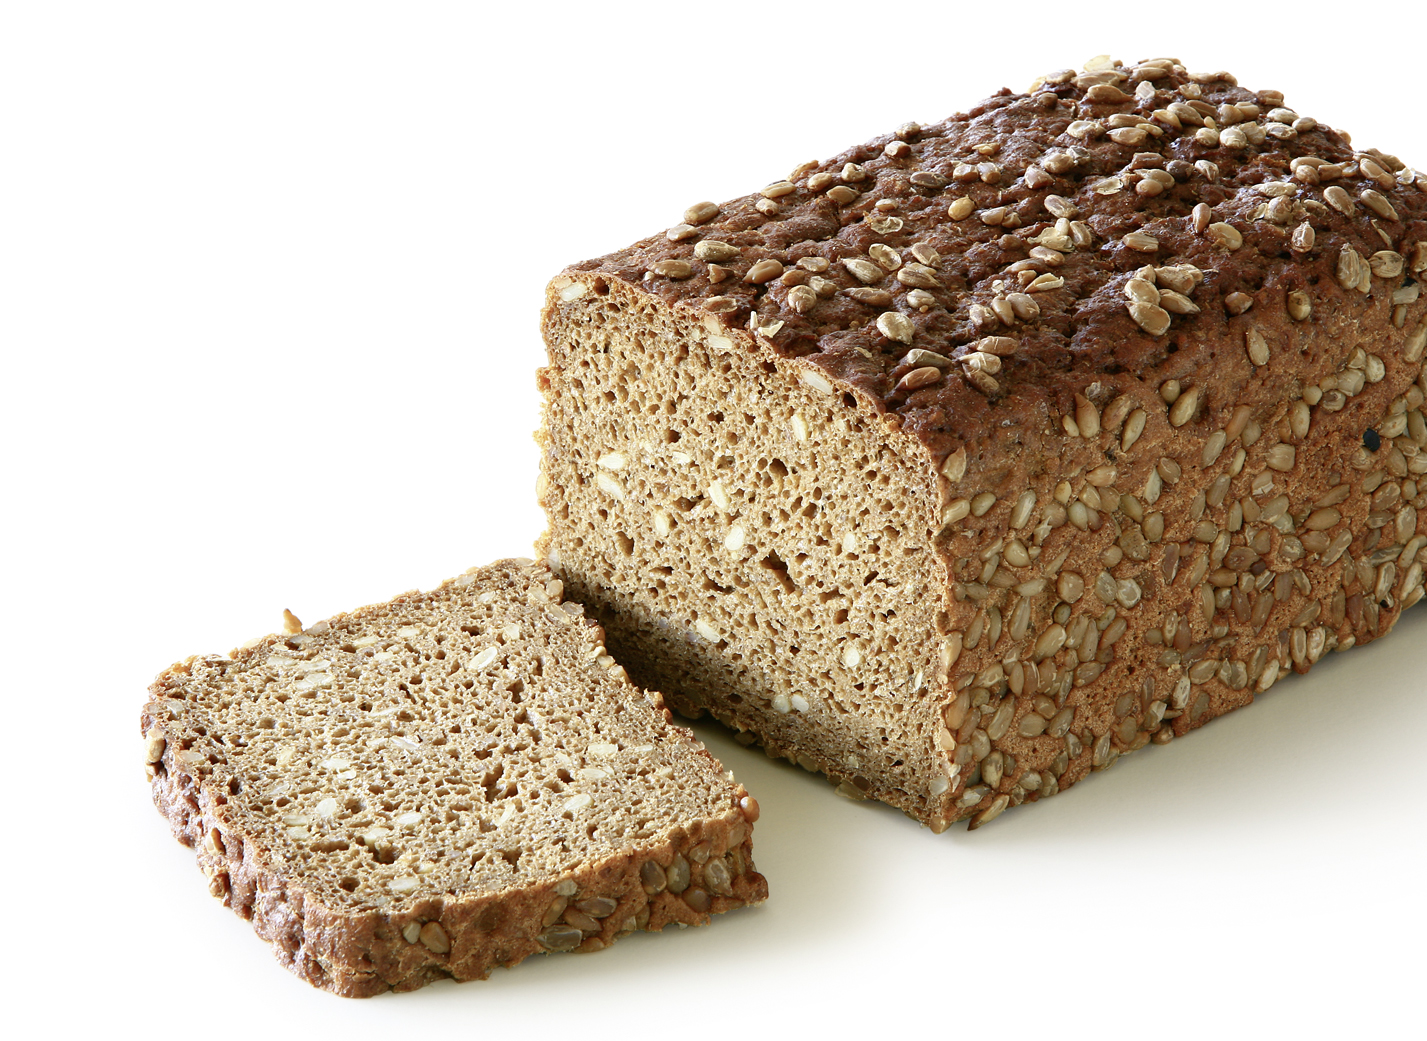 Sunflower seed bread - Wholemeal bread with 10% sunflower seeds length: 20 cm